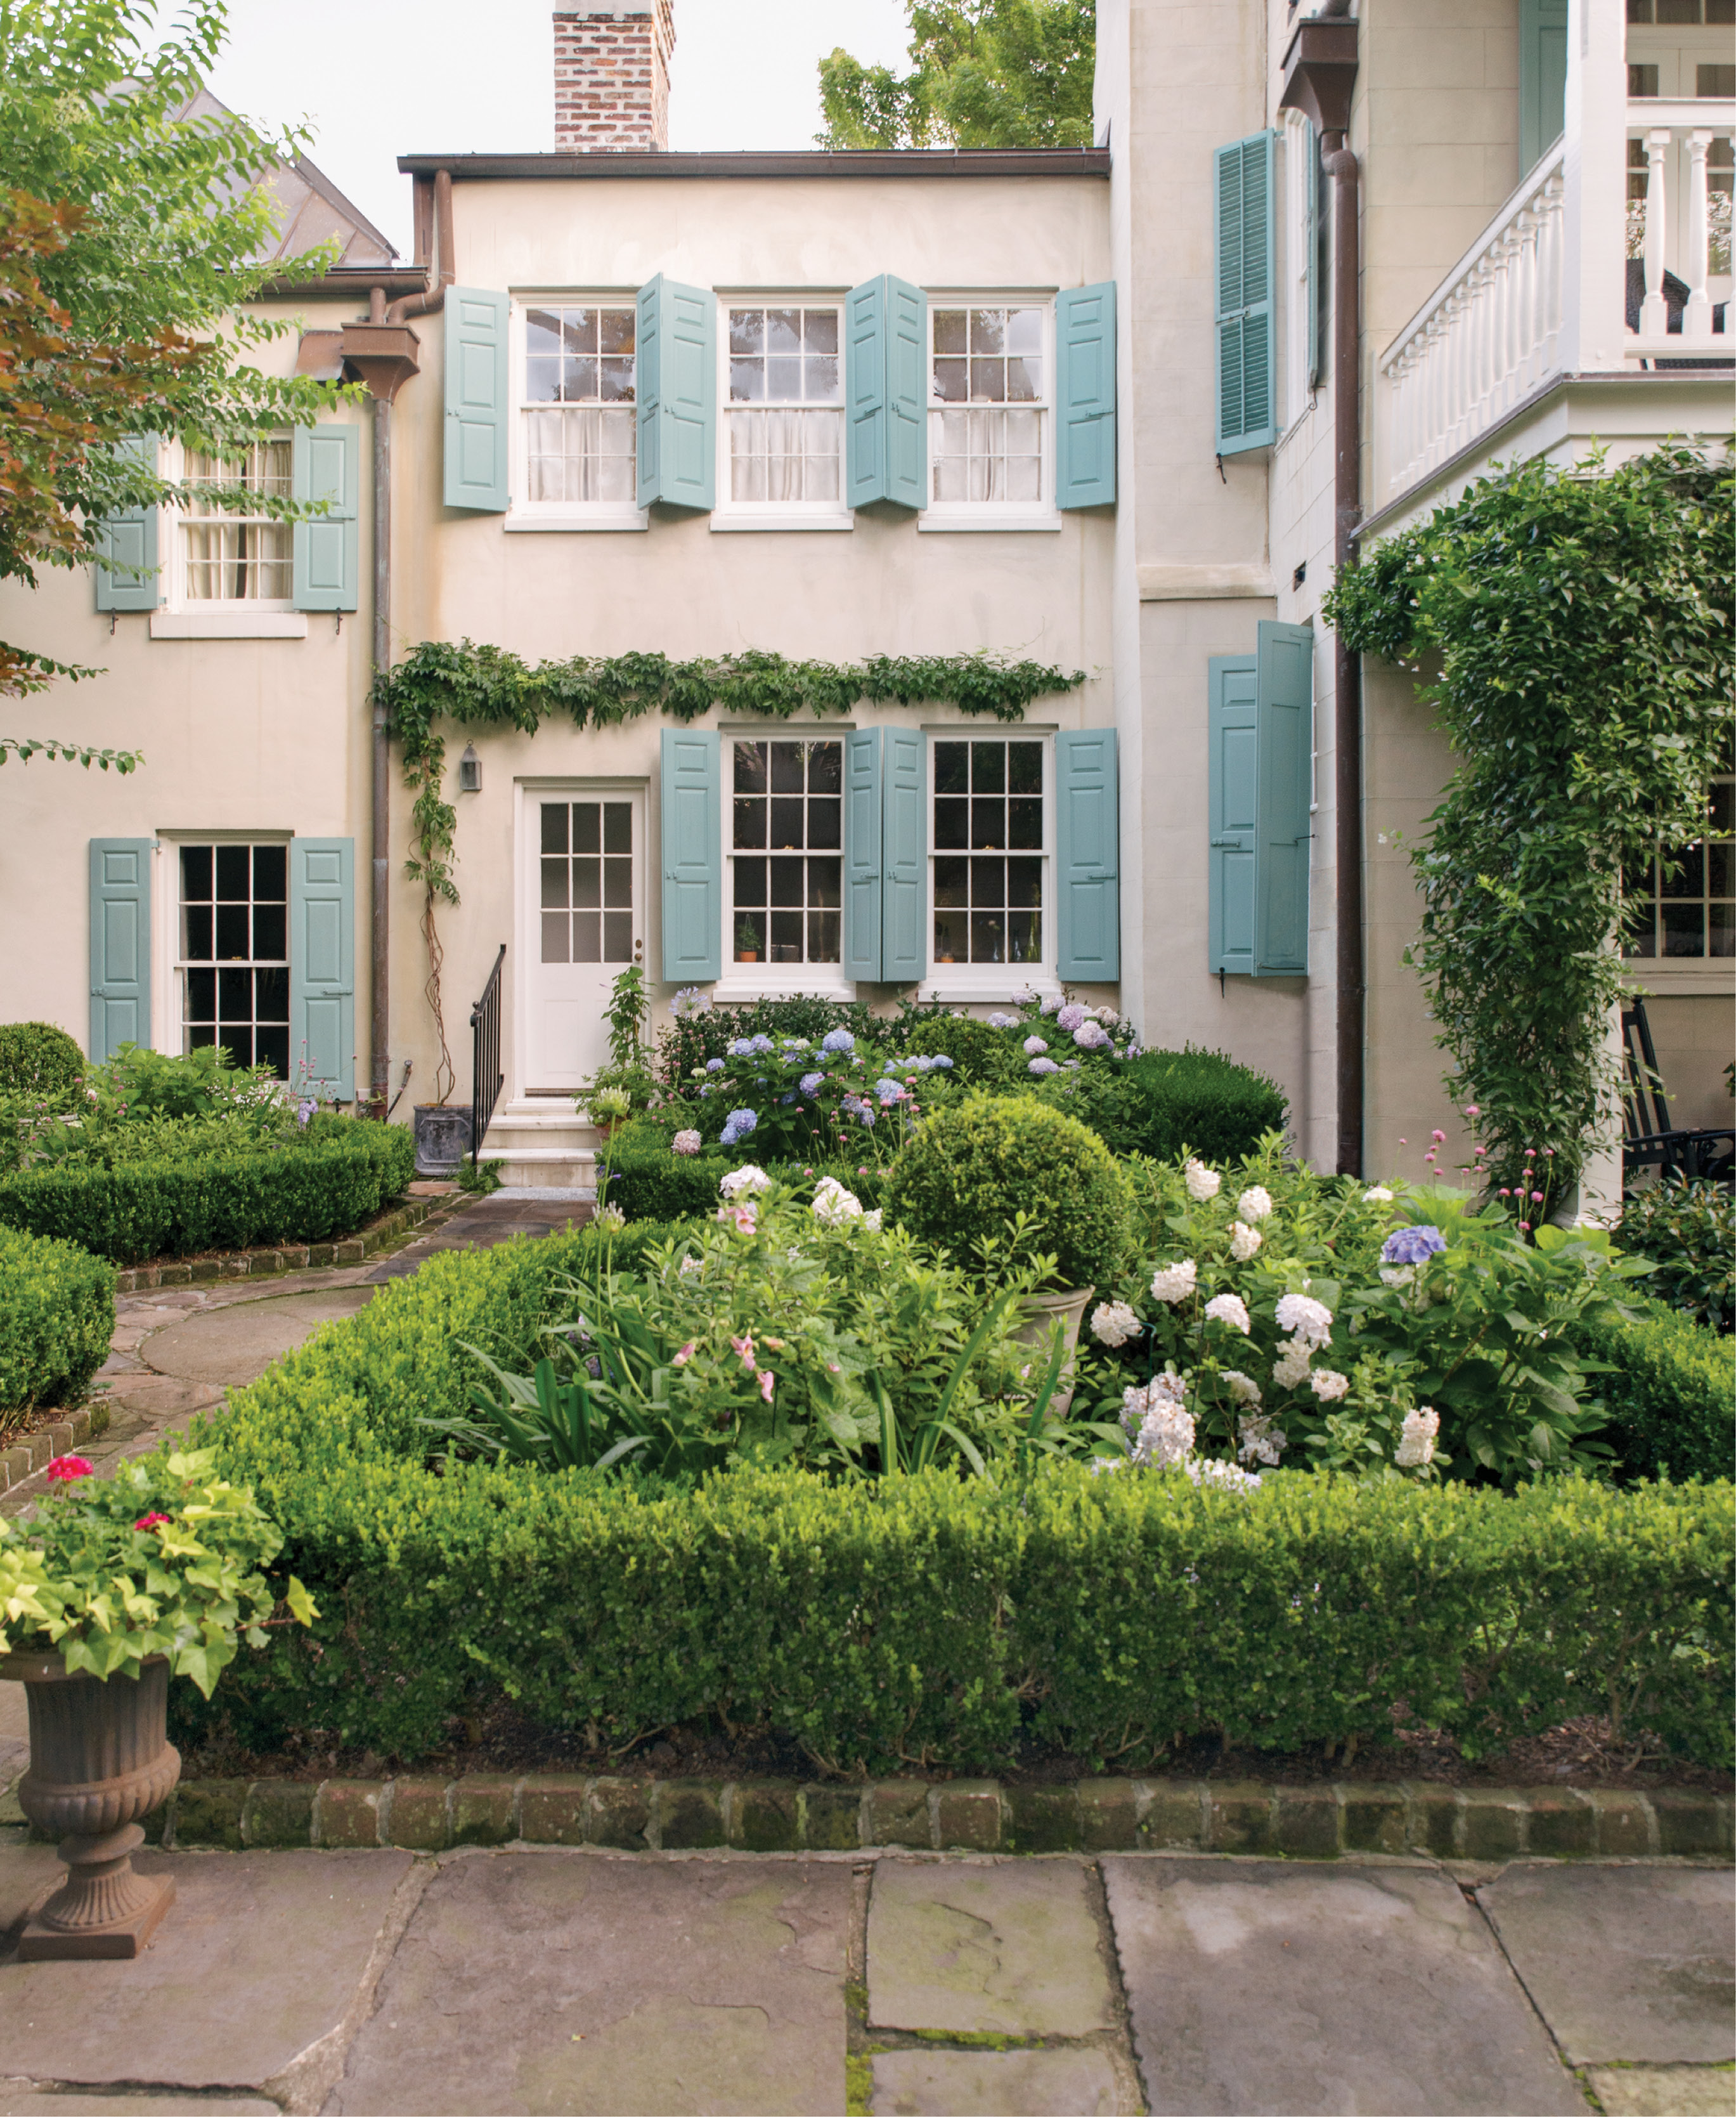 Each of the parterre's quadrants is trimmed in boxwood with a boxwood globe at the core. Flowering plants, such as agapanthus, azaleas, and hydrangeas, pop against the green. Monica potted a non-invasive evergreen wisteria to train above the kitchen door.